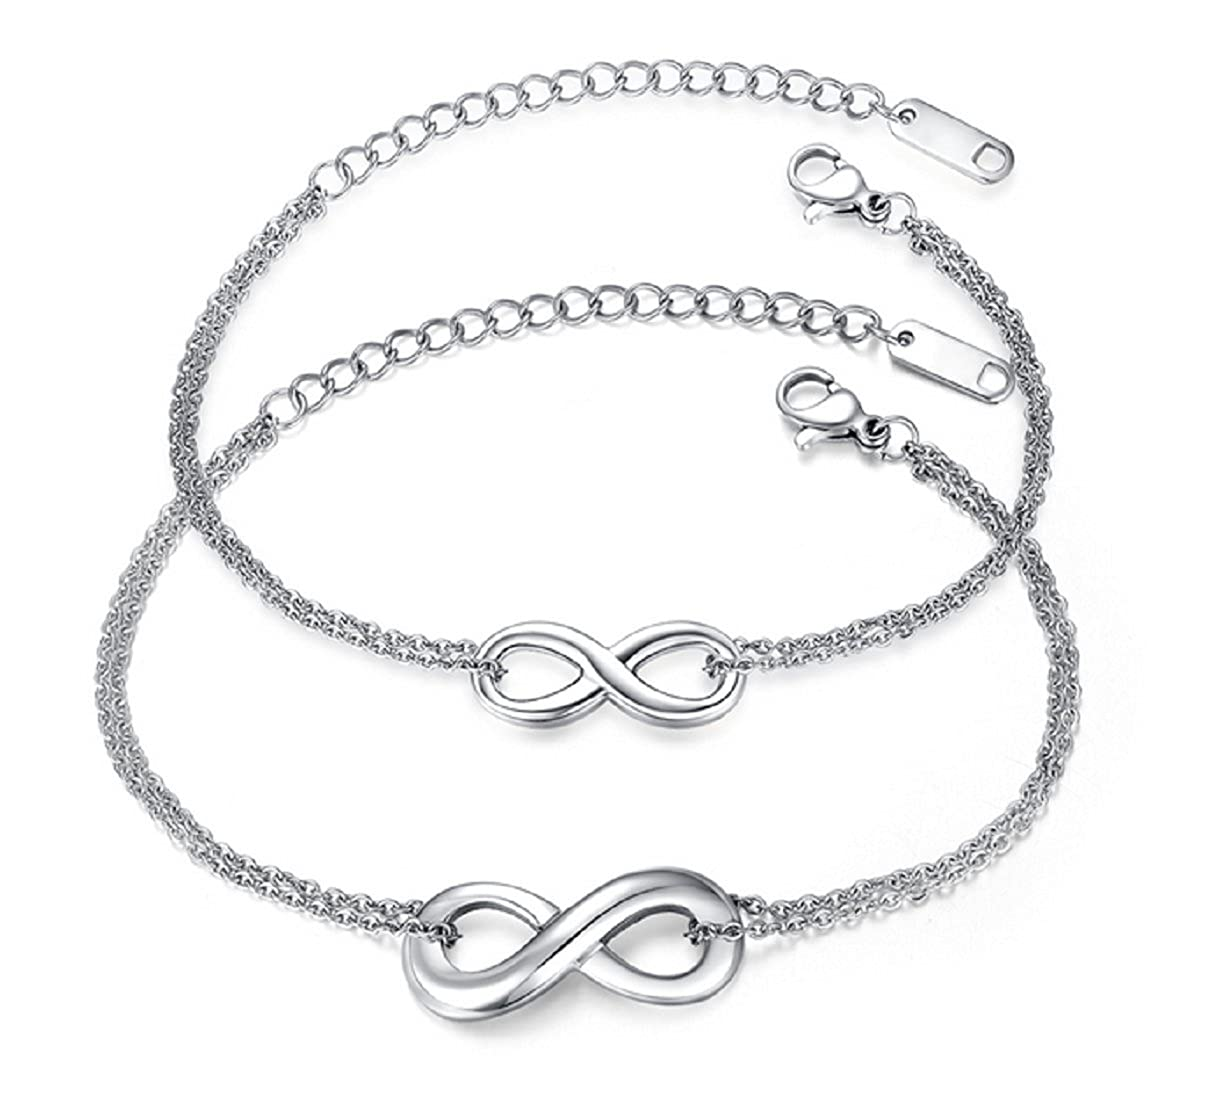 Blowin Lot of 2 Couples Bracelets - His and Hers Silver Stainless Steel Infinity Love Charm Bracelets for Men Women BW39P800389